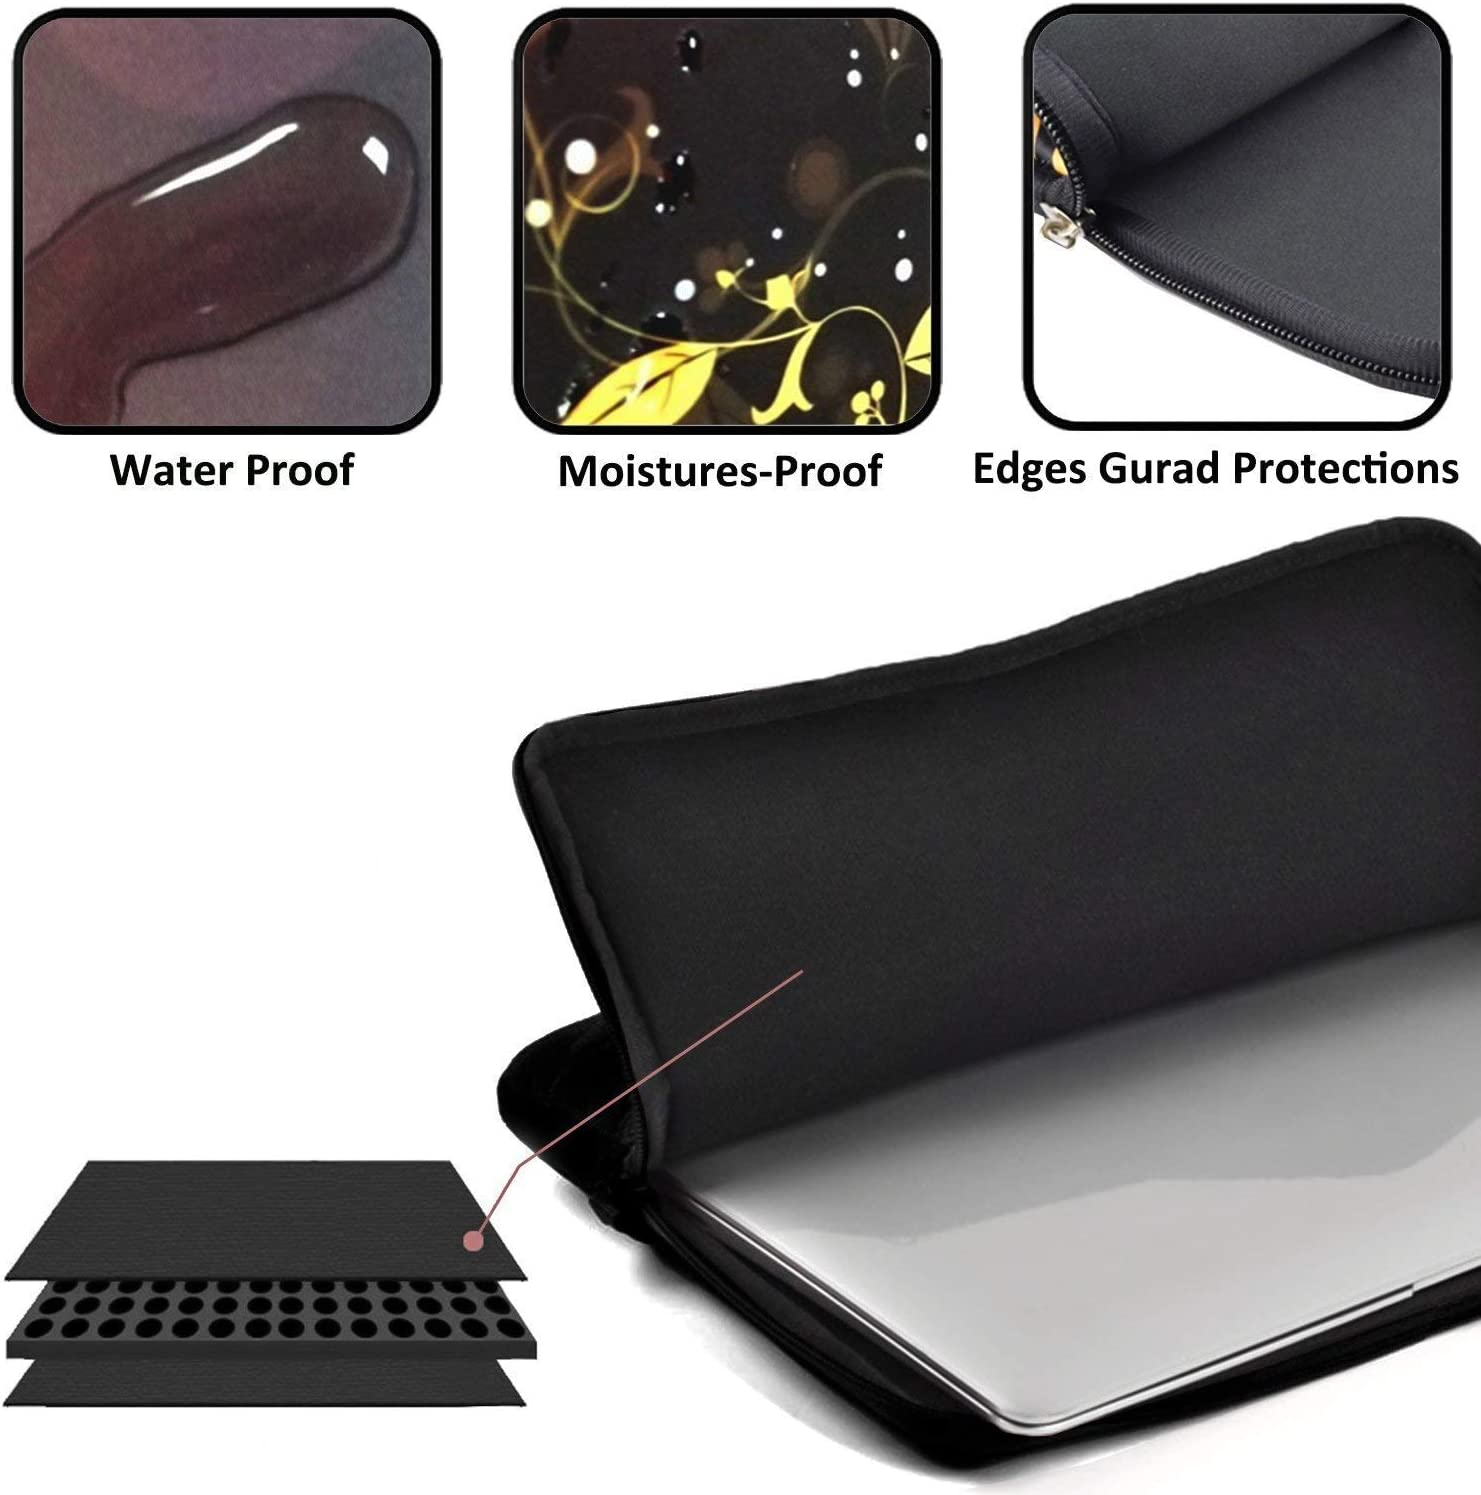 Amazing Sunflower Sunset 13-15 Inch Laptop Sleeve Case Protective Bag Water Repellent Gaming Computer Bag Tablet Ultrabook Carrying Cover for Boys /& Girls